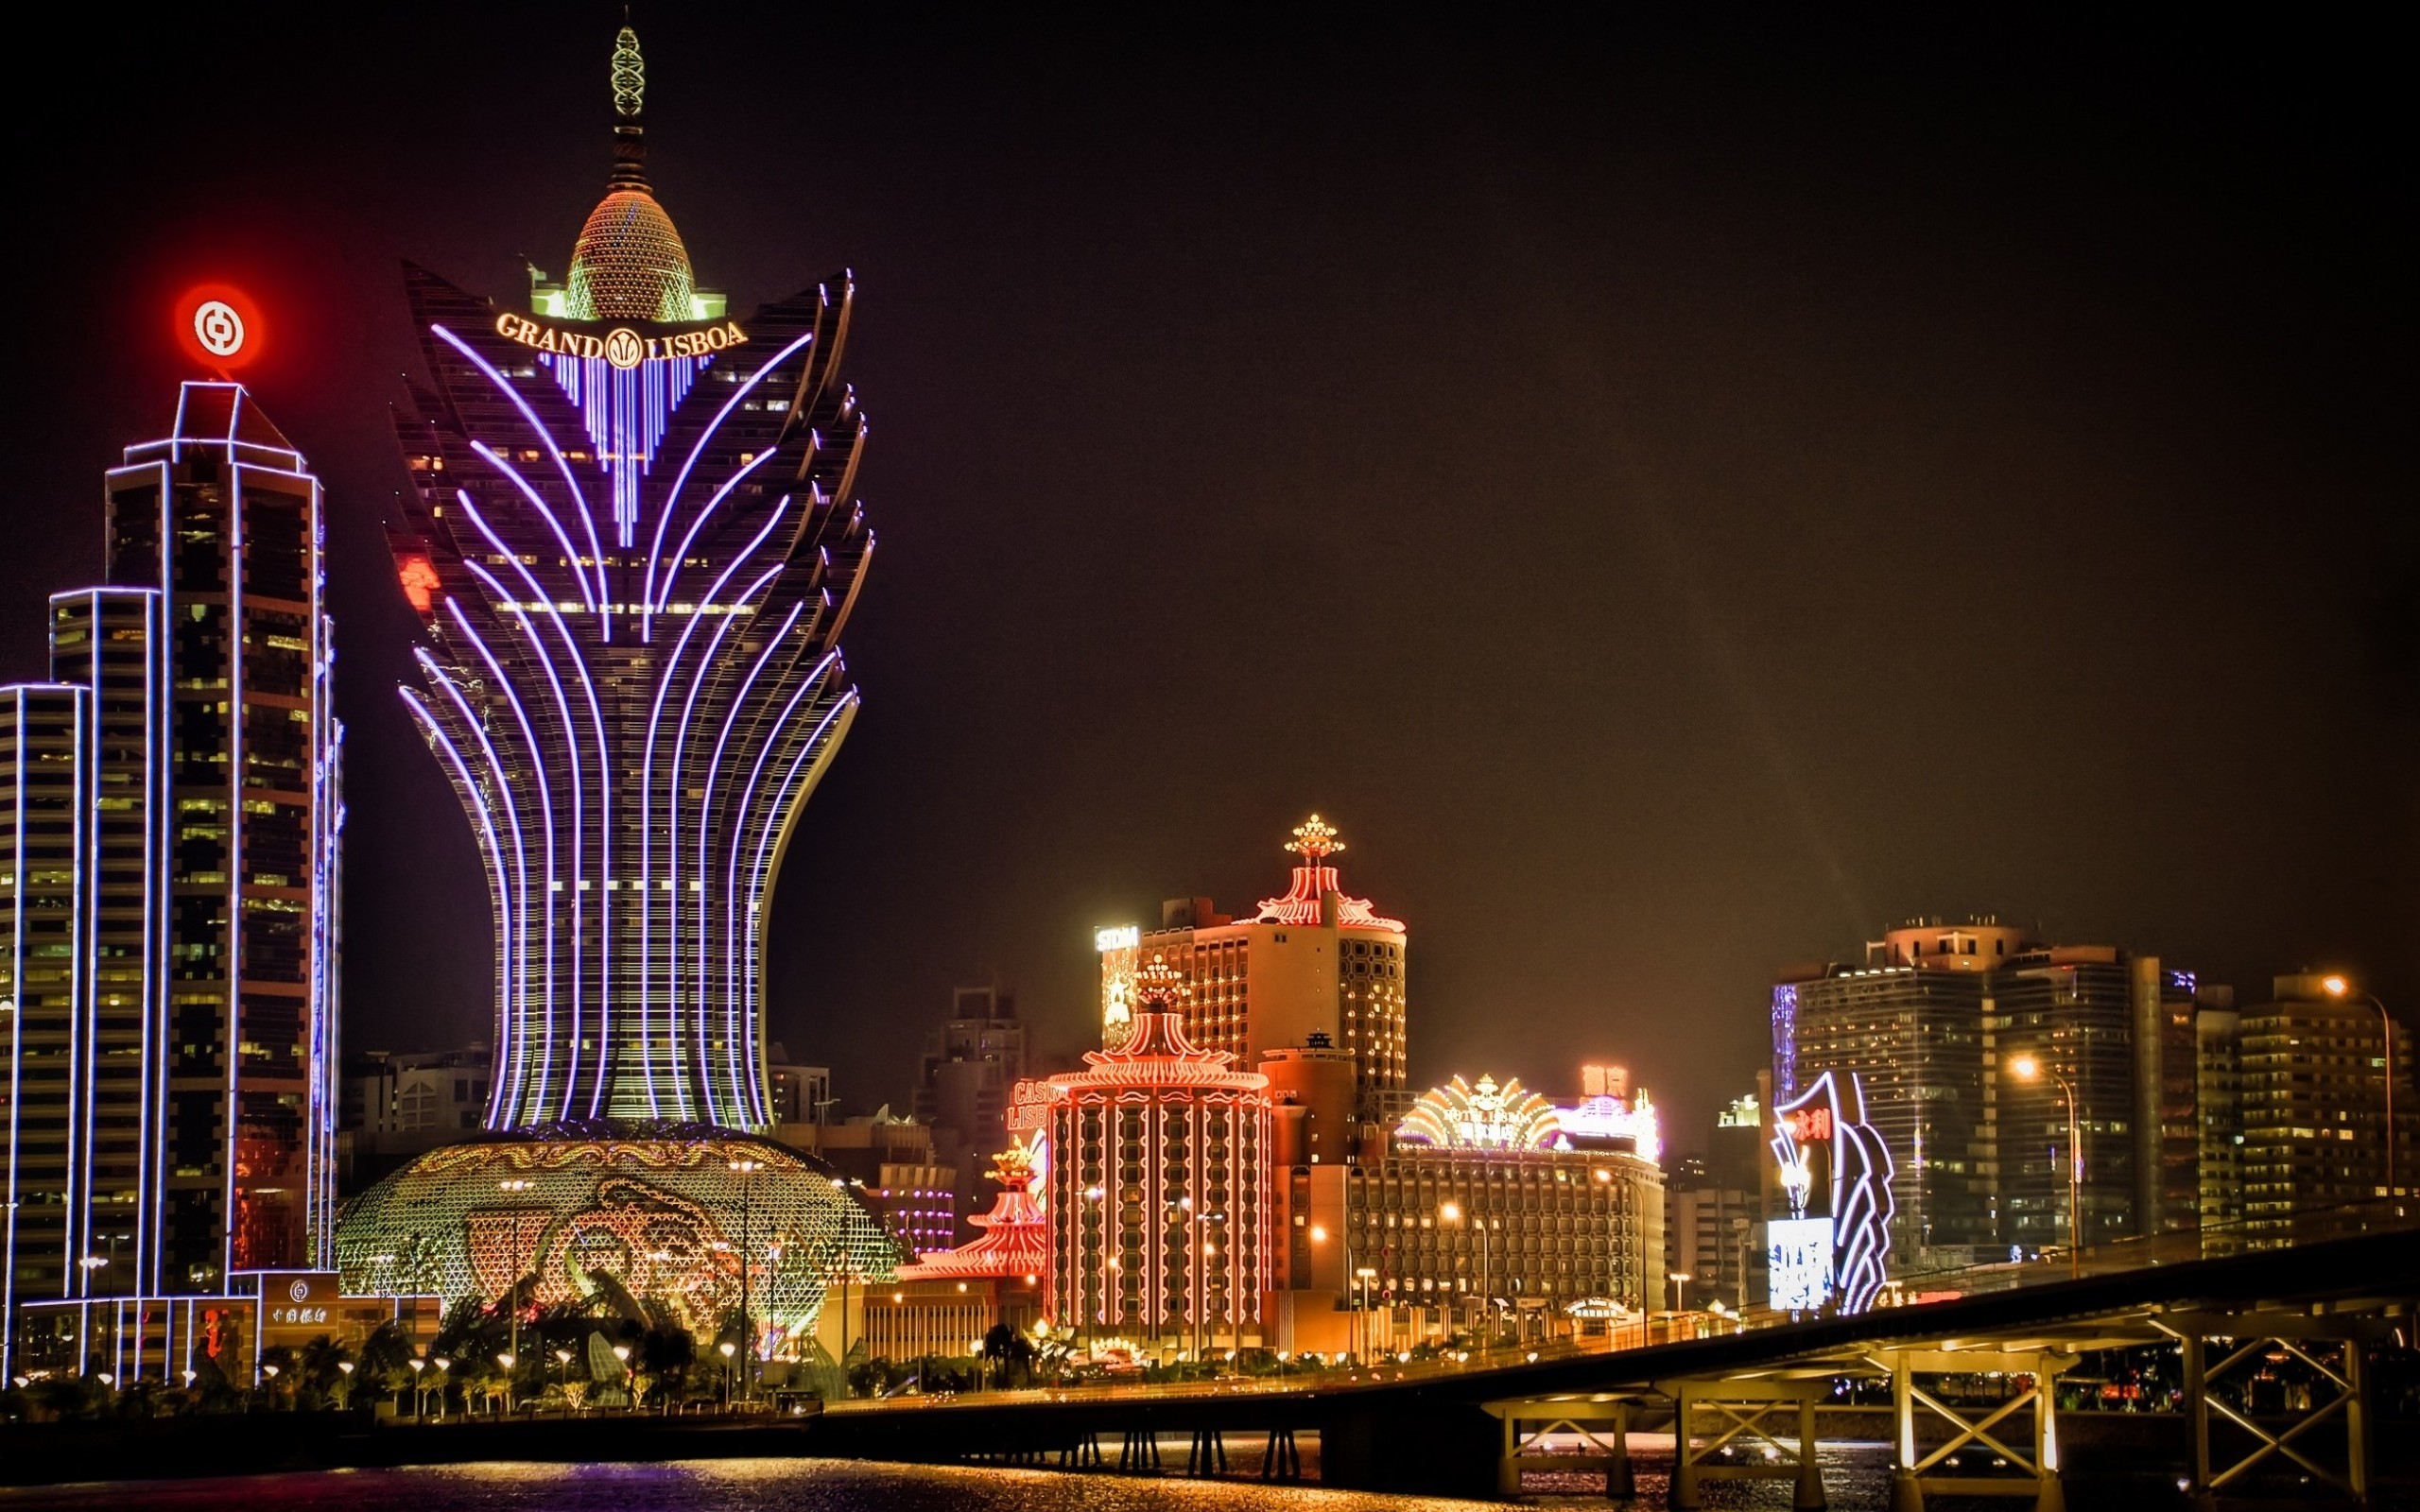 Best Hotel Casinos In Macau